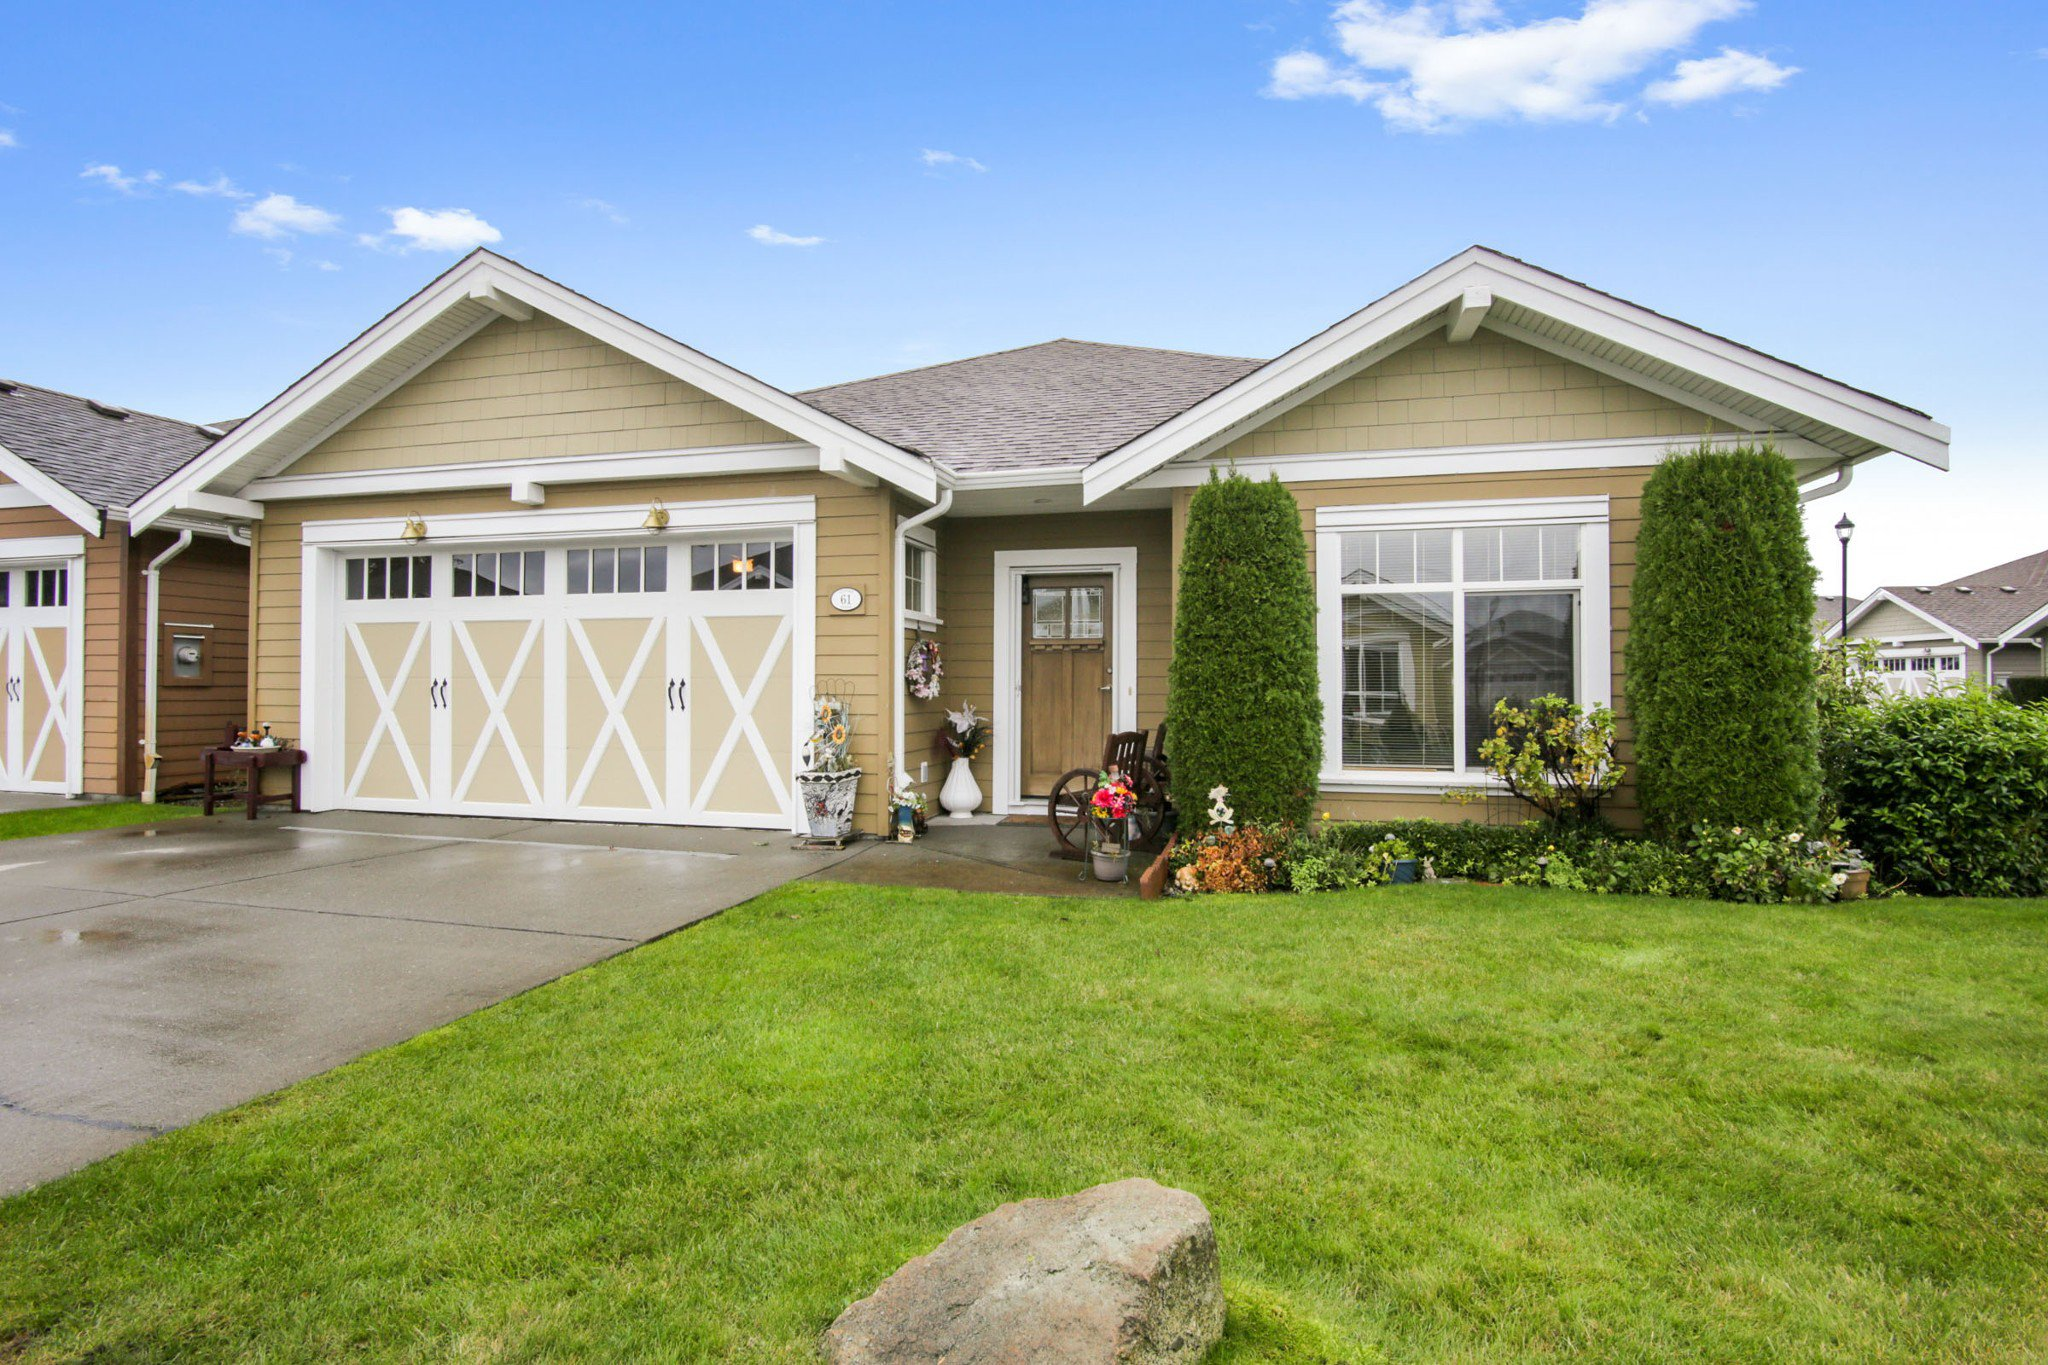 """Main Photo: 61 7600 CHILLIWACK RIVER Road in Chilliwack: Sardis East Vedder Rd House for sale in """"Clover Creek"""" (Sardis)  : MLS®# R2515130"""